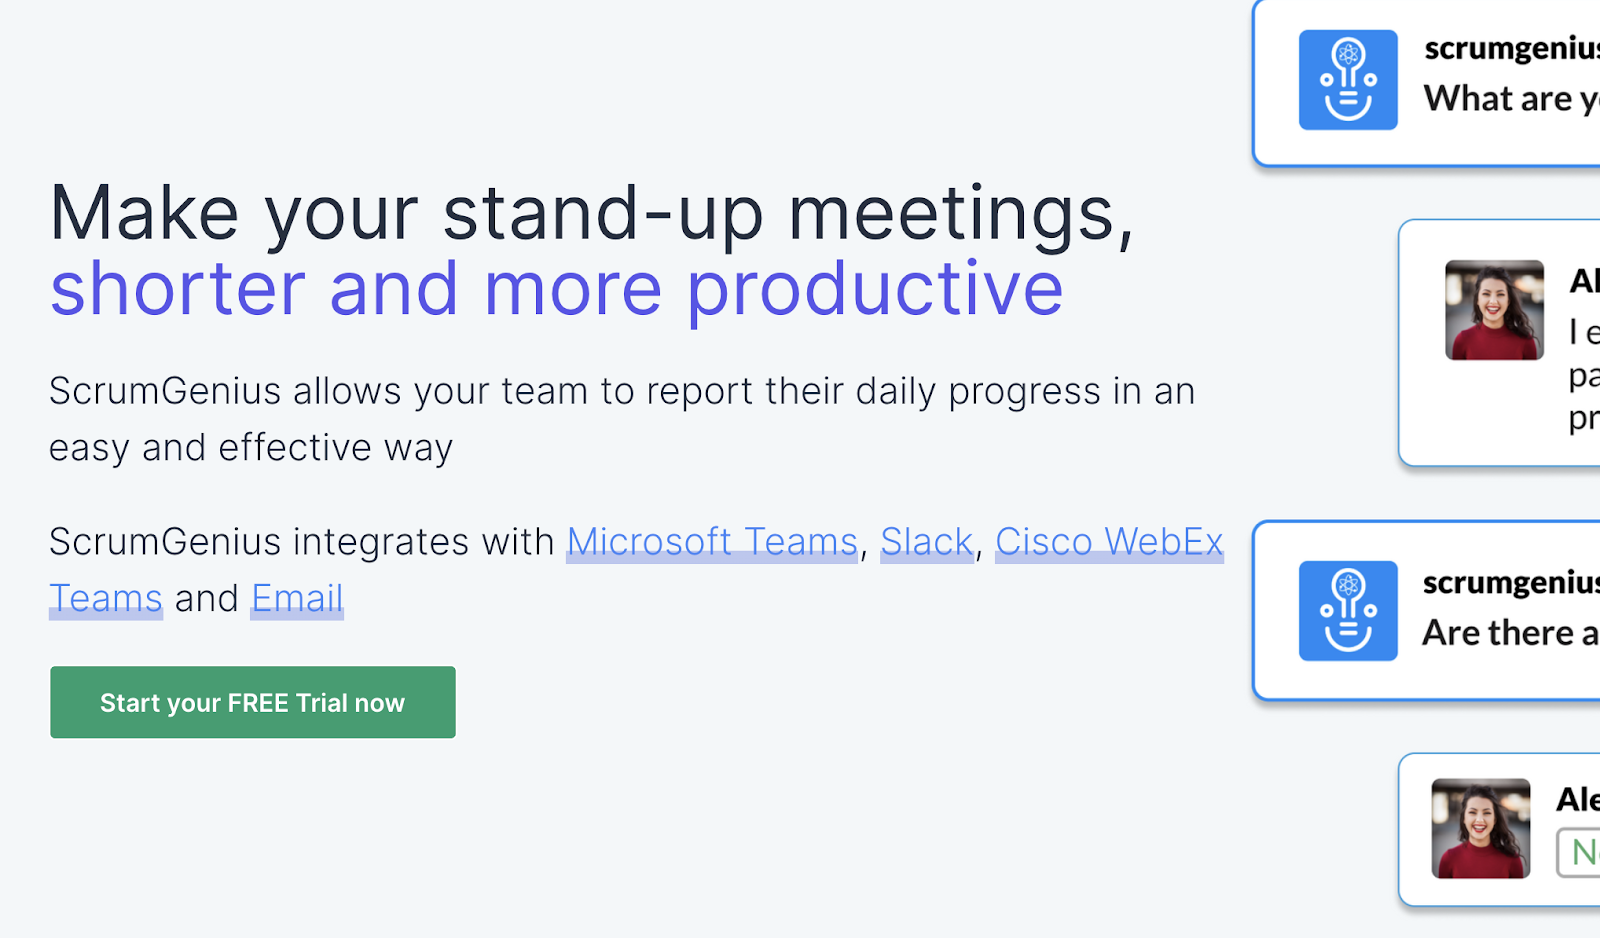 Make your stand-up meetings shorter and more productive. (ScrumGenius allows your team to report their daily progress in an easy and effective way)